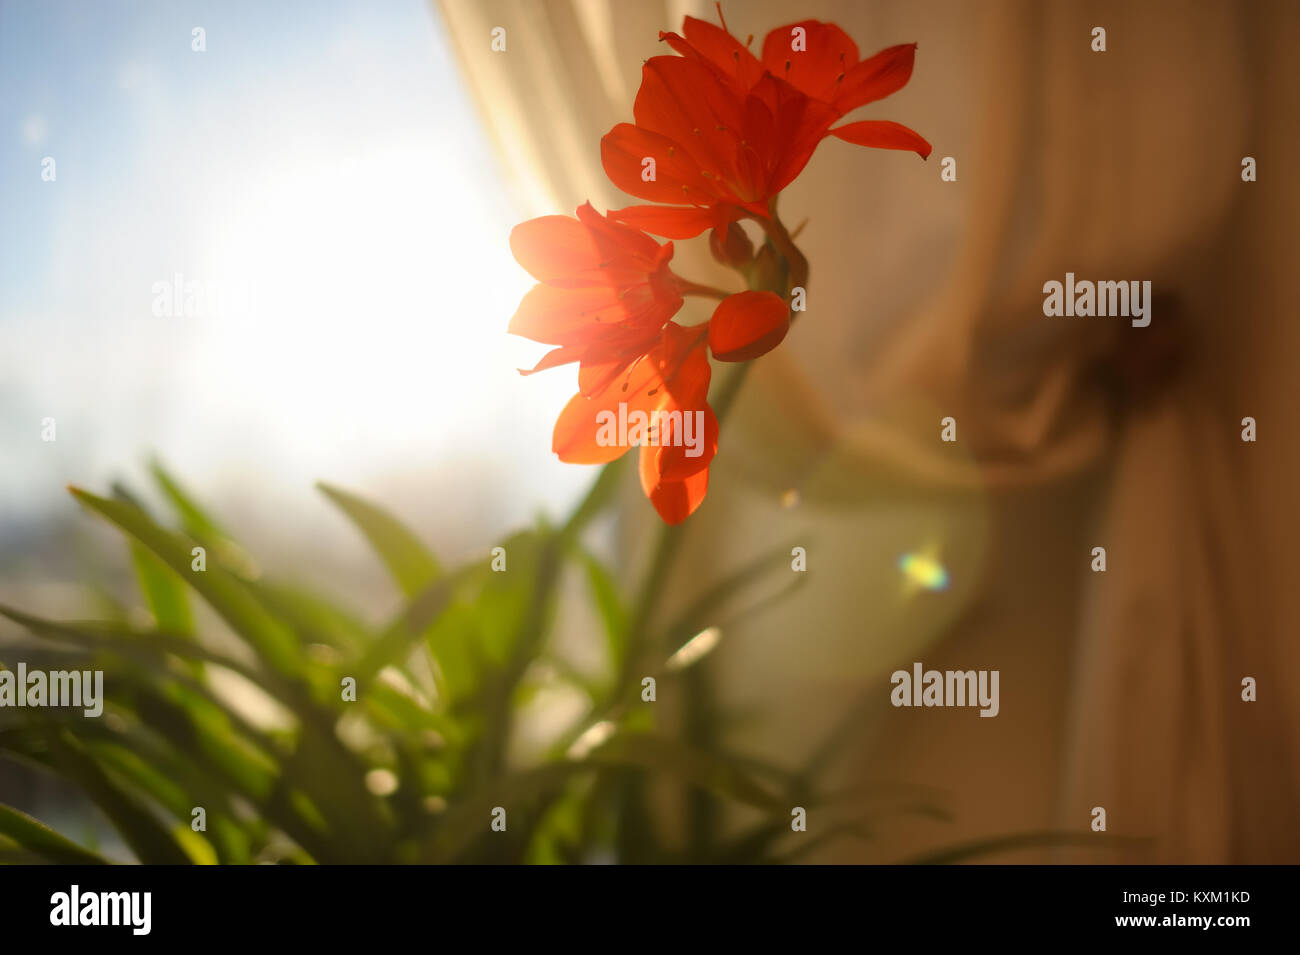 A morning flower - Stock Image